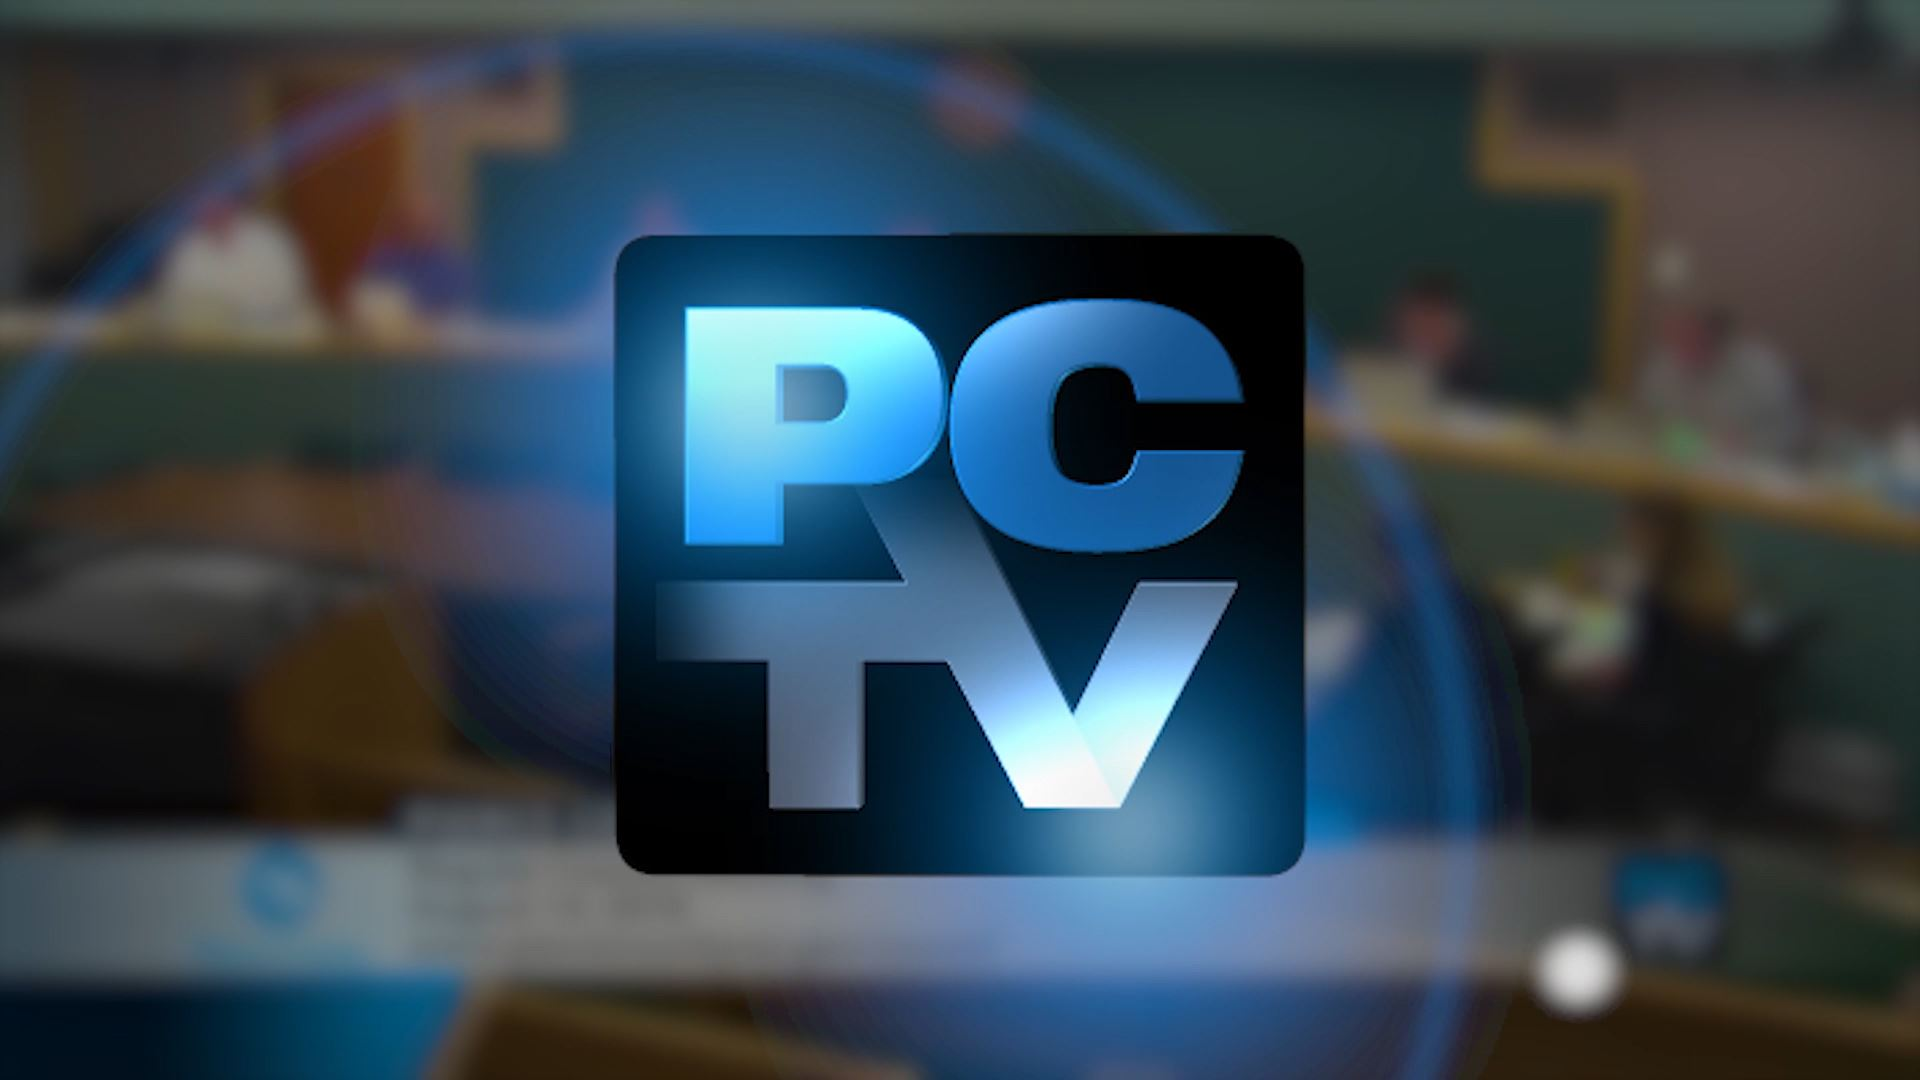 PCTV Meetings PSA